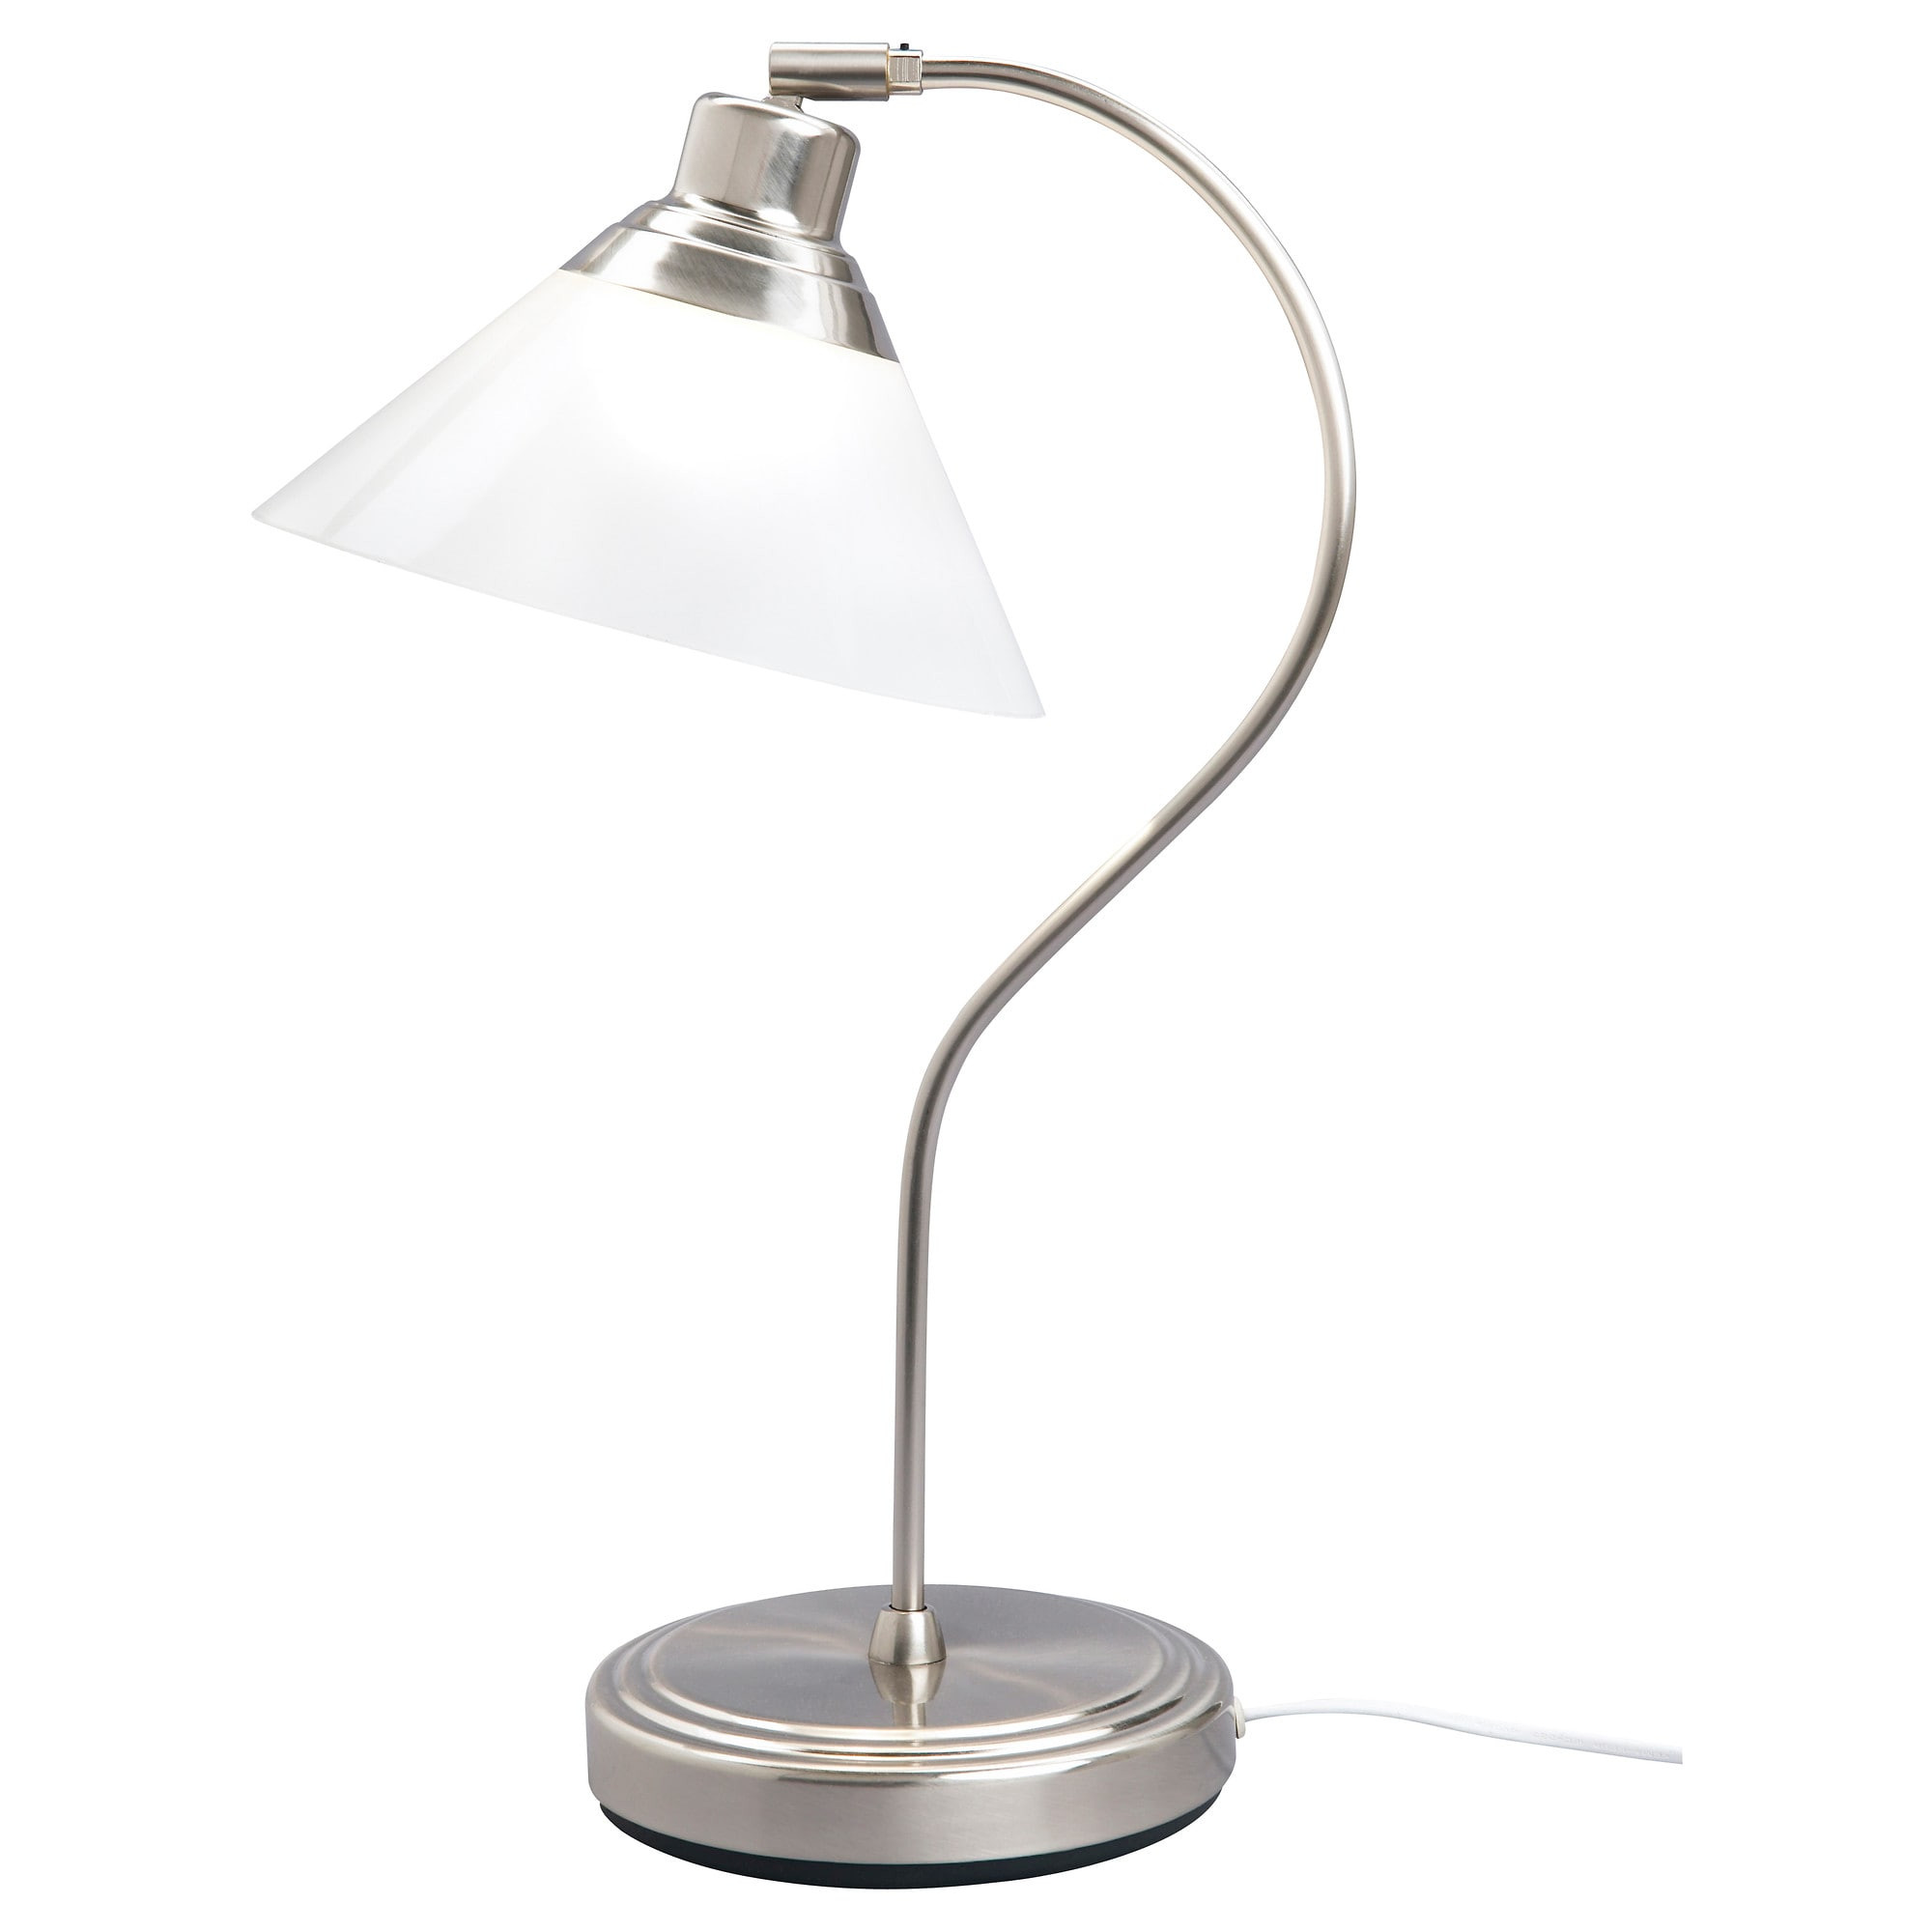 Best ideas about Ikea Desk Lamp . Save or Pin IKEA Now.